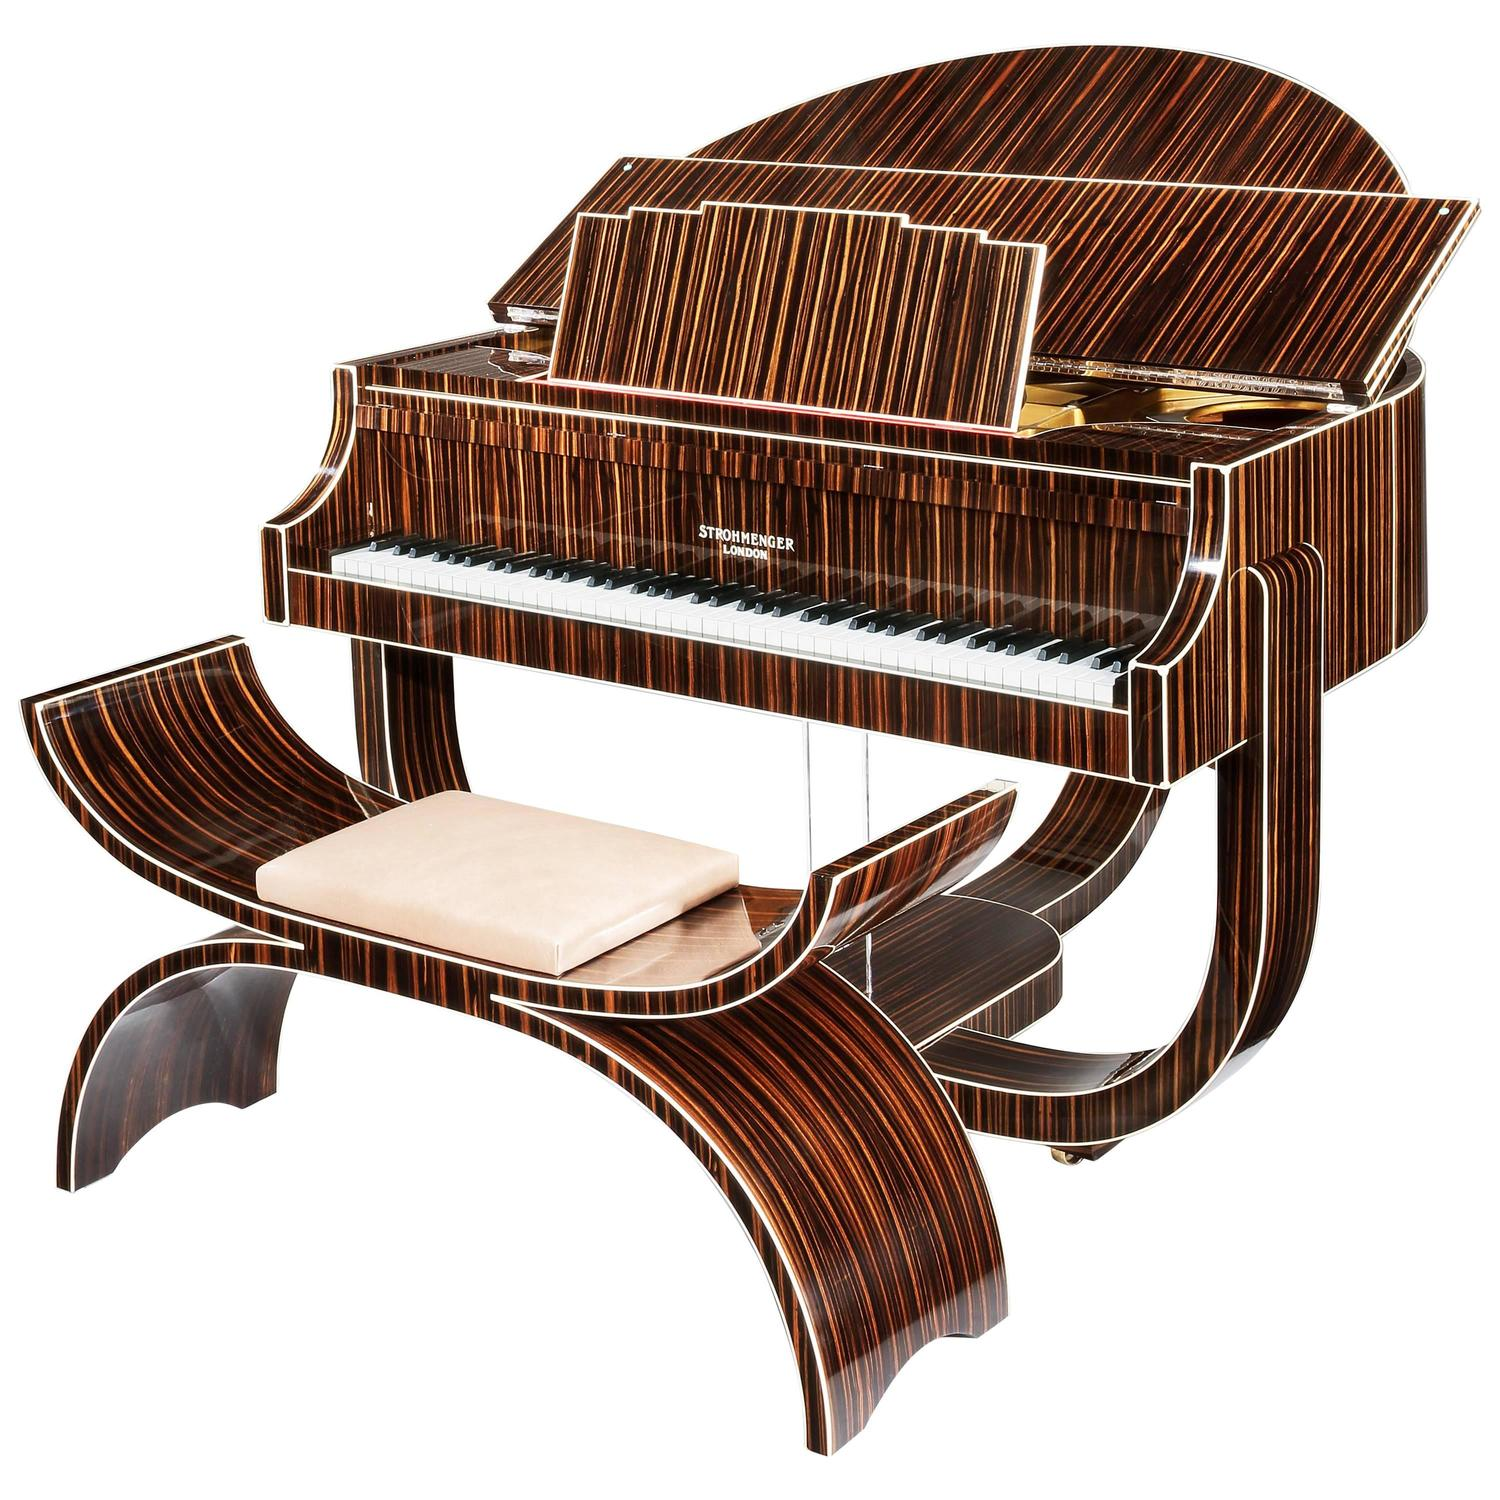 Art deco furniture perfect art deco chair styles in high quality furniture with additional 76 art TLWRPTV